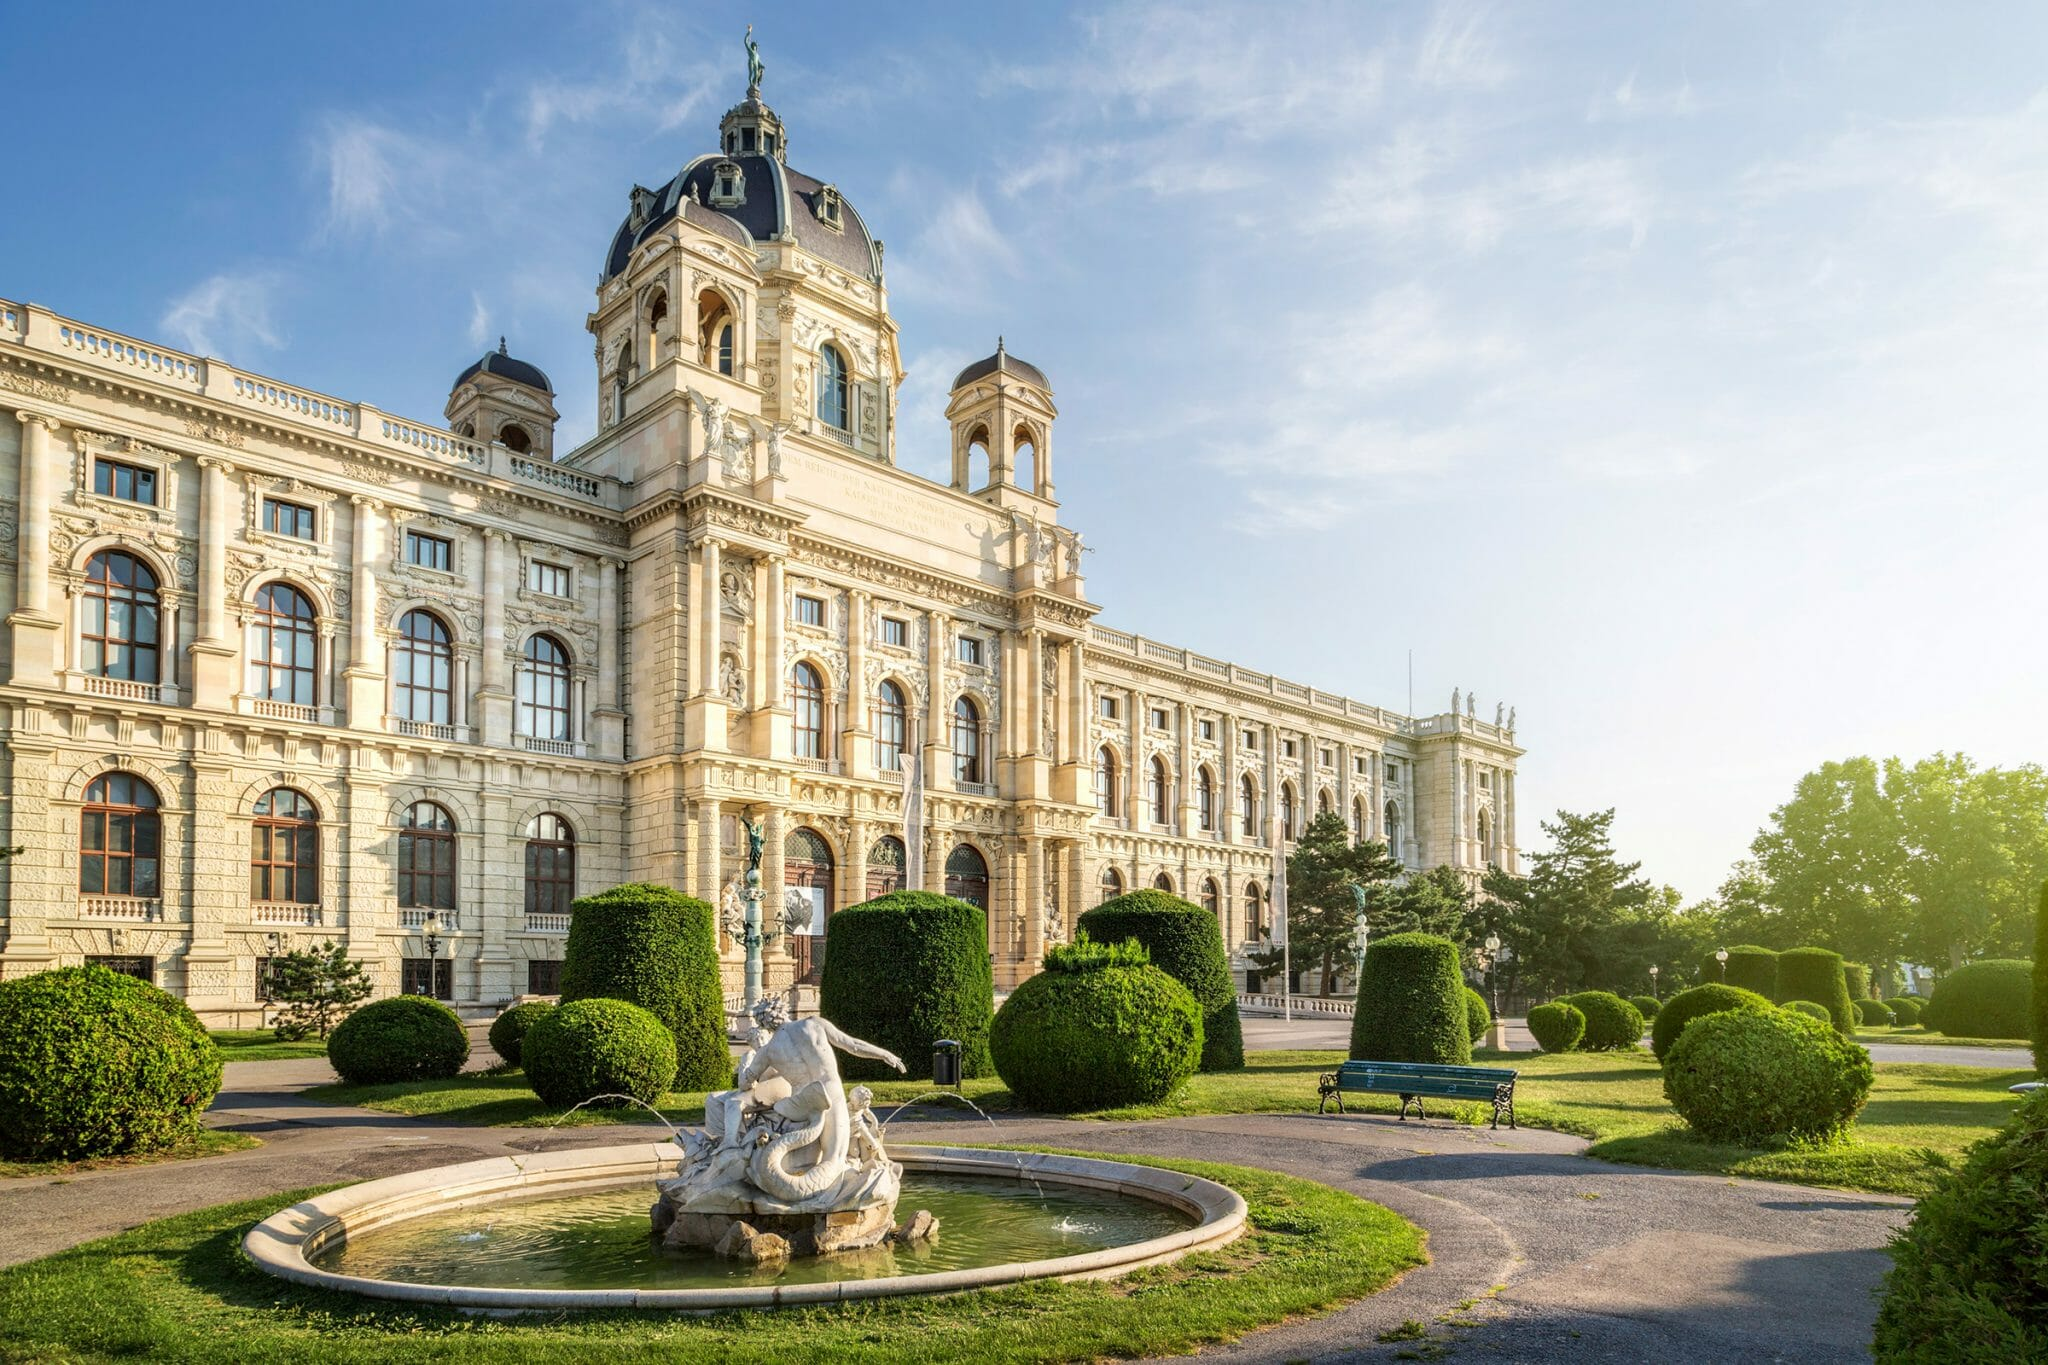 Richard Plaschka Fellowship for young university teachers of historical sciences in Austria, 2021 (Paid Opportunity)